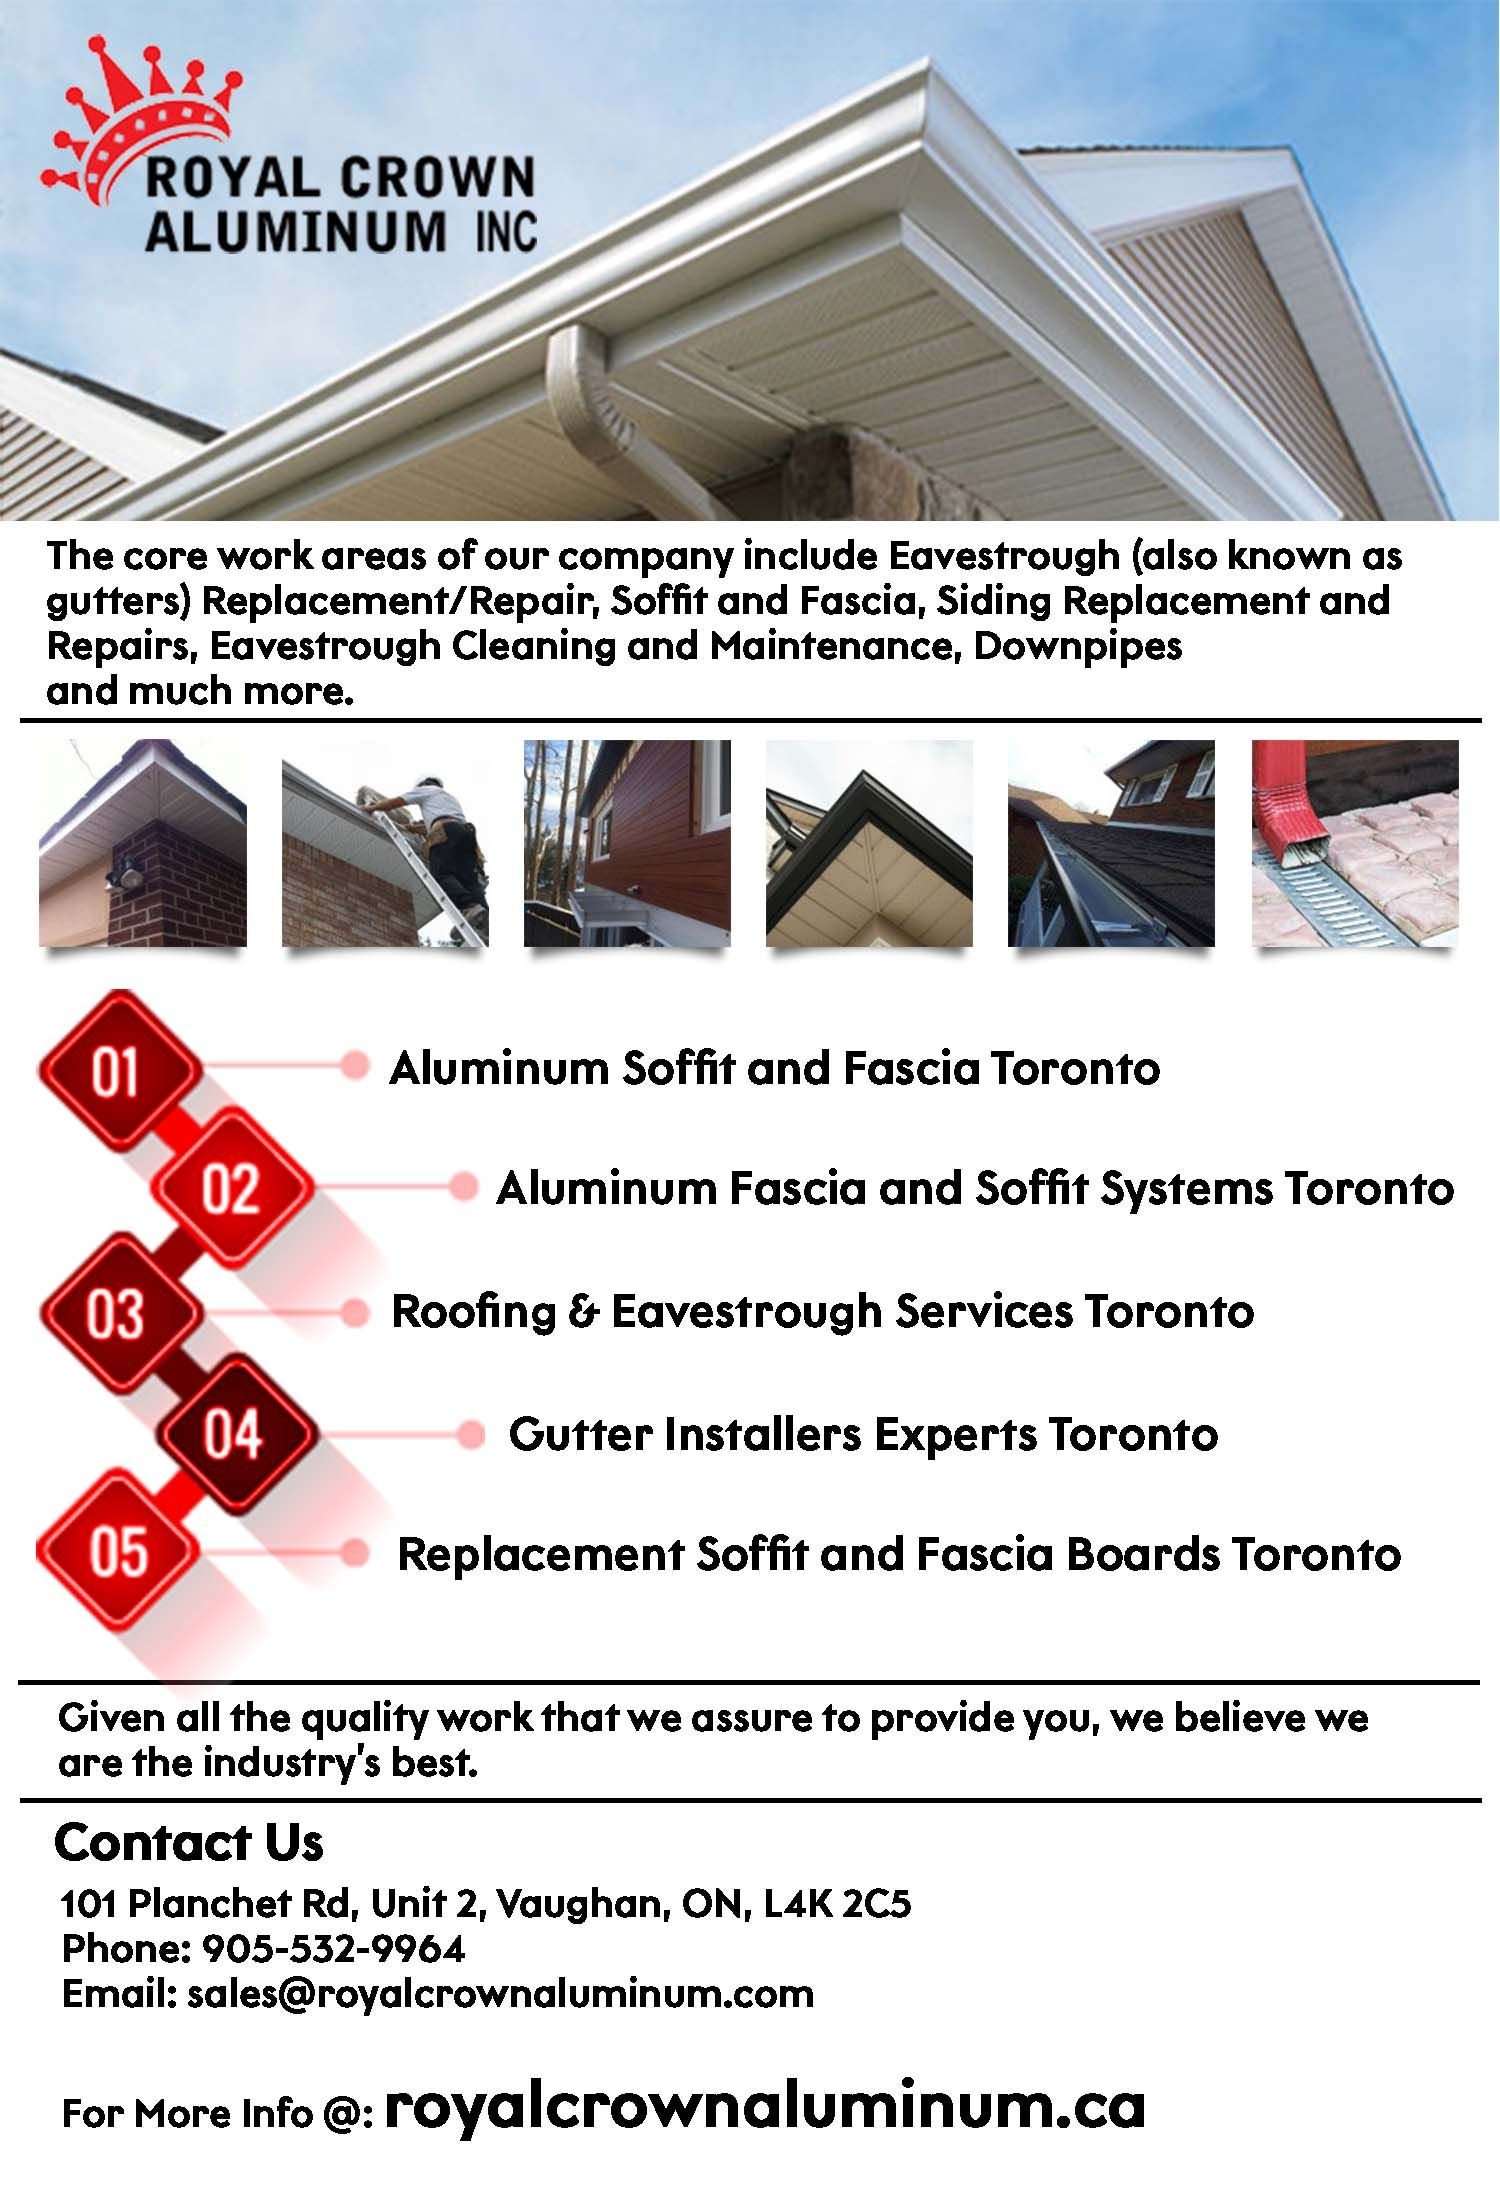 Gutter Installation Services Toronto For Adding The Seamless Water Passage Efficiency To The Roof Siding Repair Aluminum Siding Repair How To Install Gutters